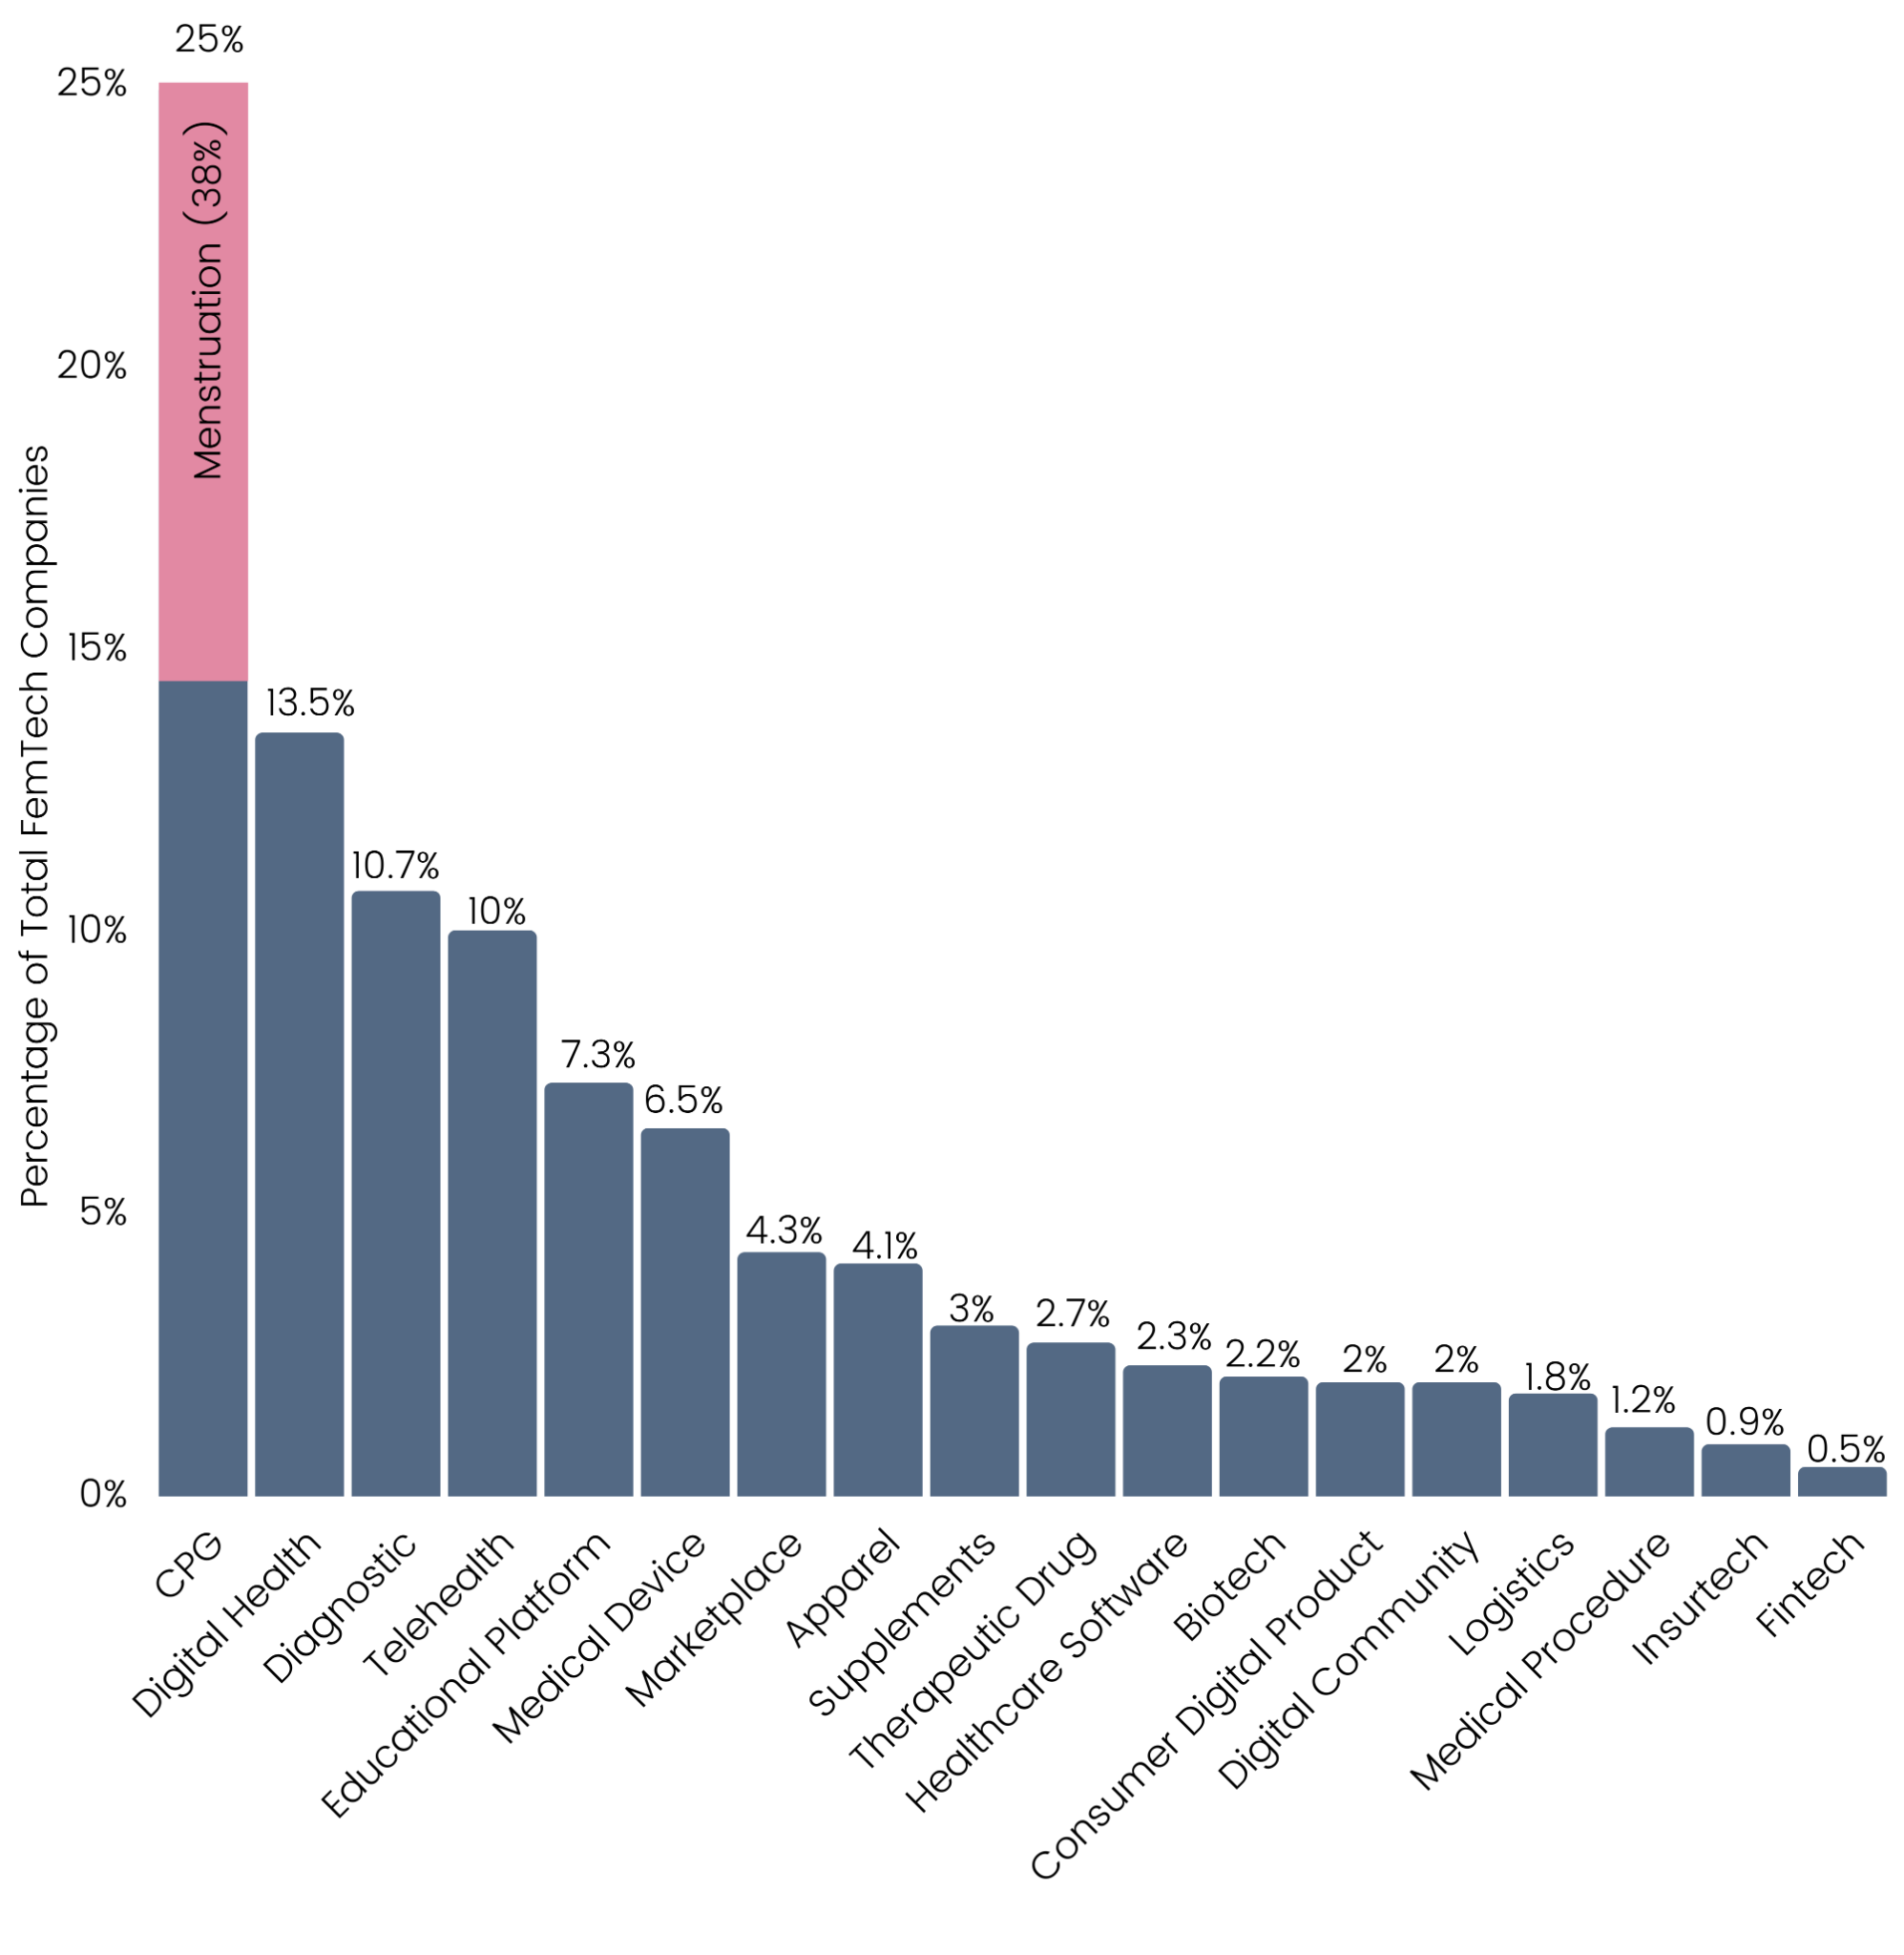 Bar chart with the percentage of total femtech companies in each sector